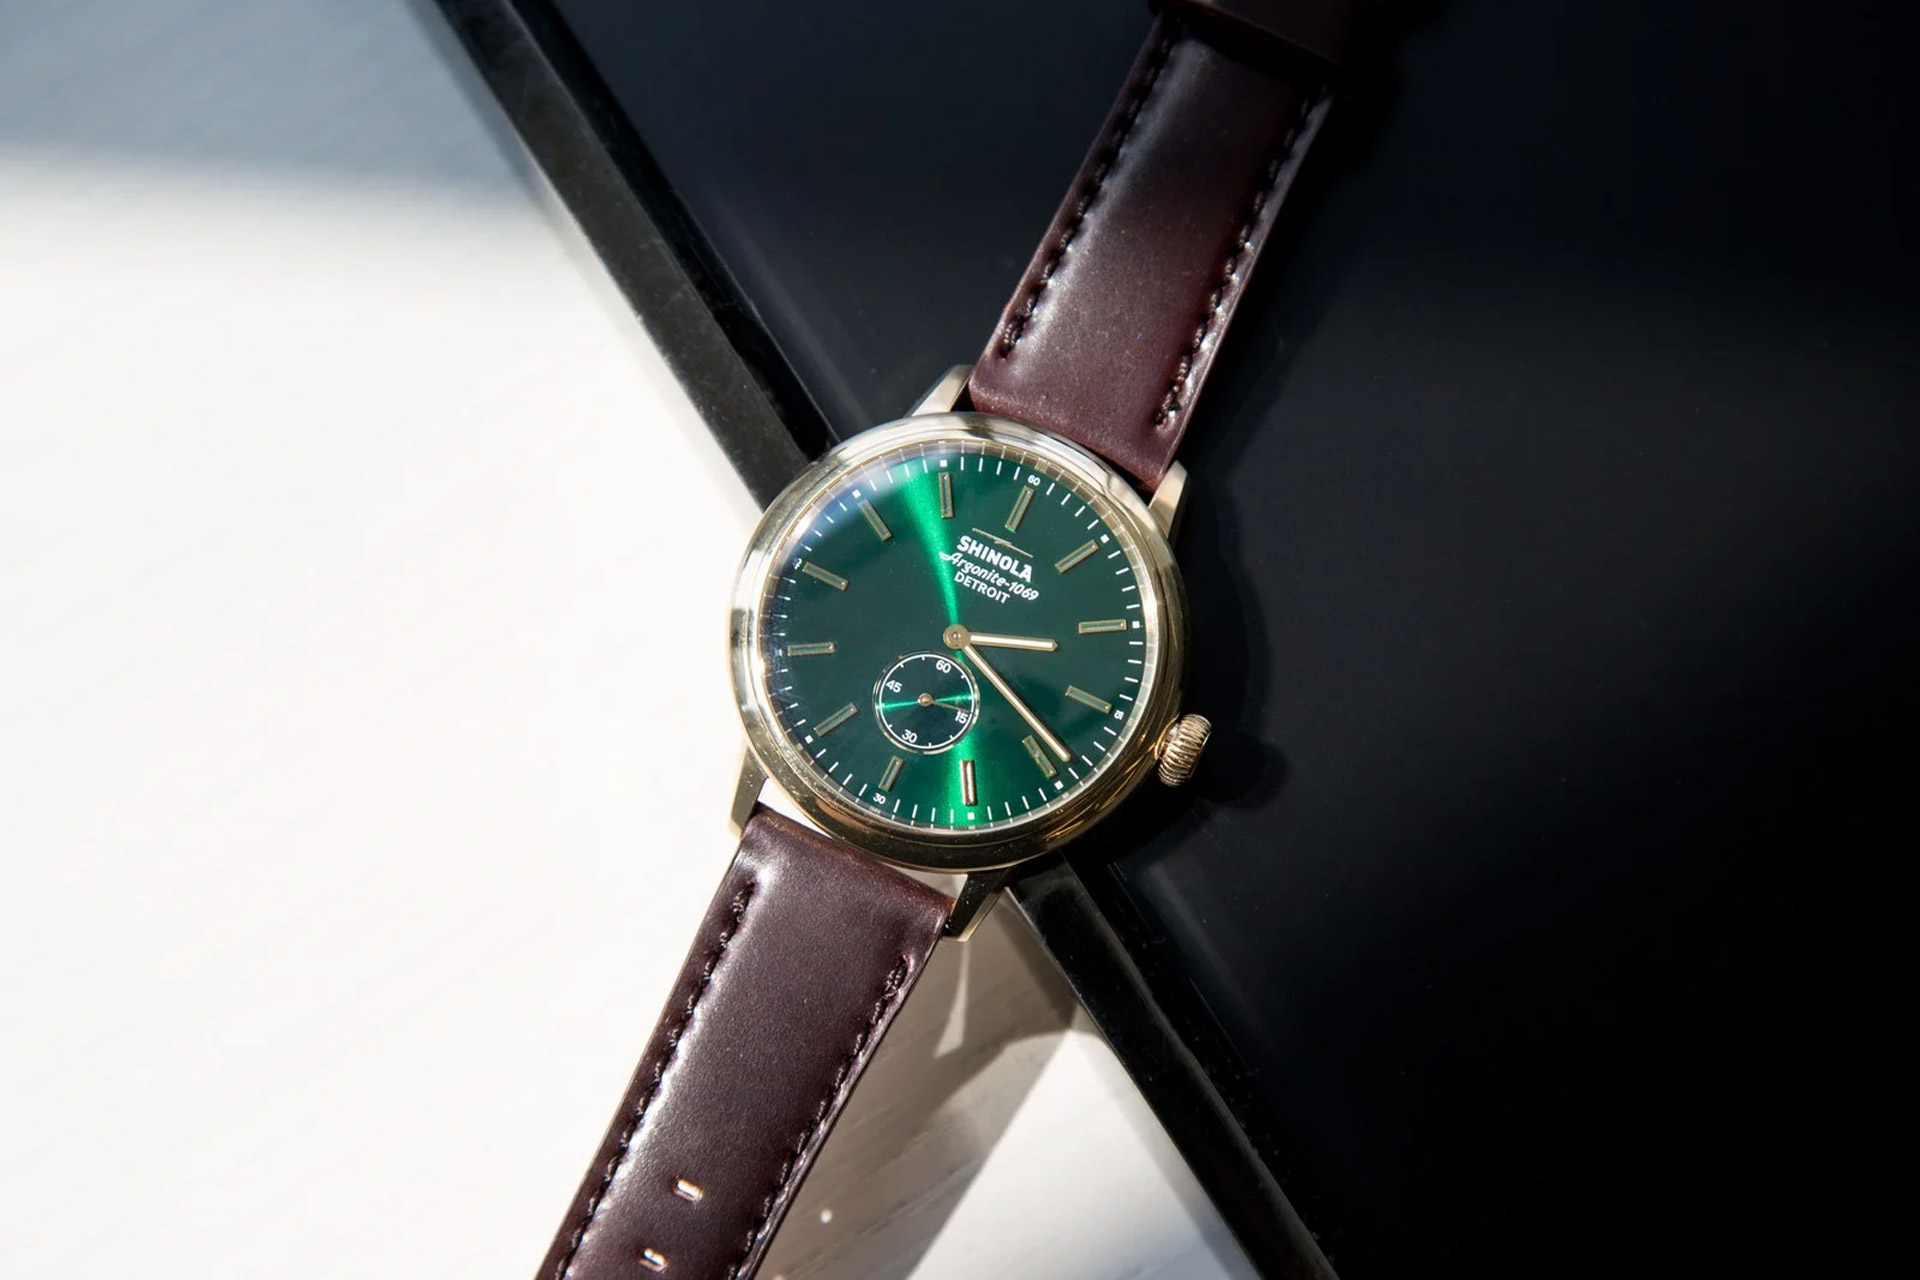 Top 10 Best Dress Watches for Men 2020 Buyers Guide and Reviews